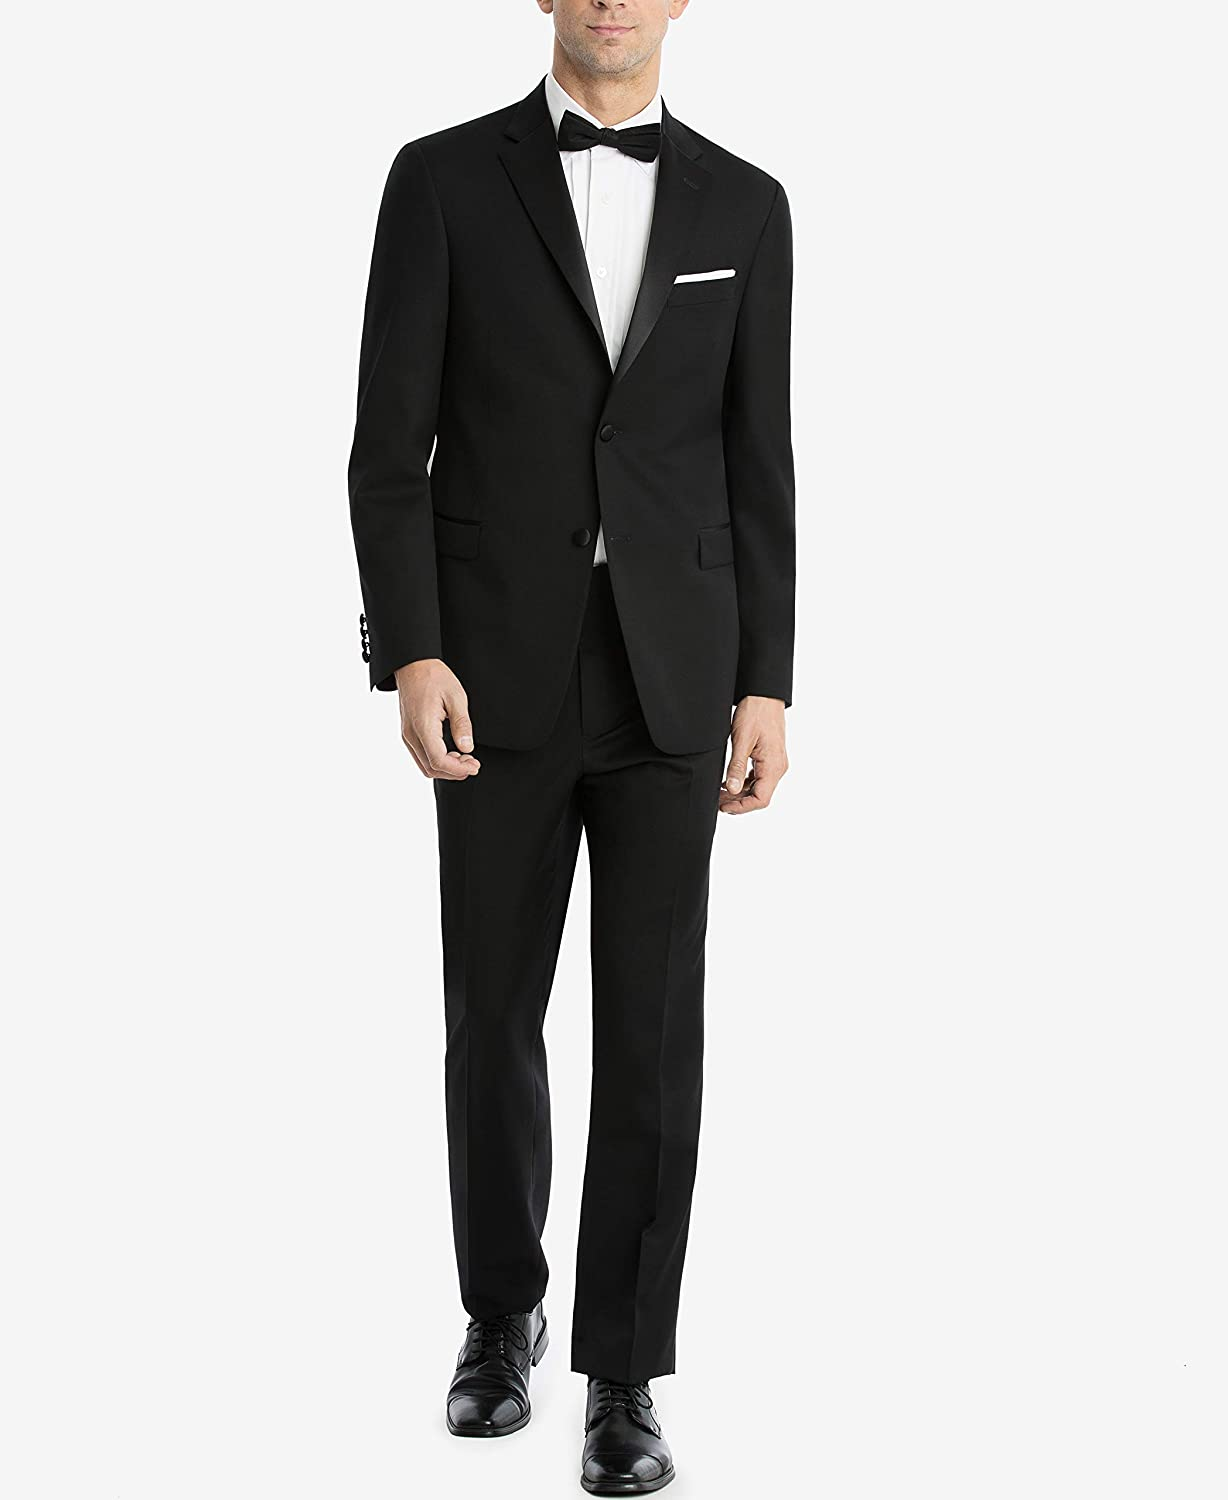 Tommy Hilfiger Mens Modern Fit Tuxedo Jacket